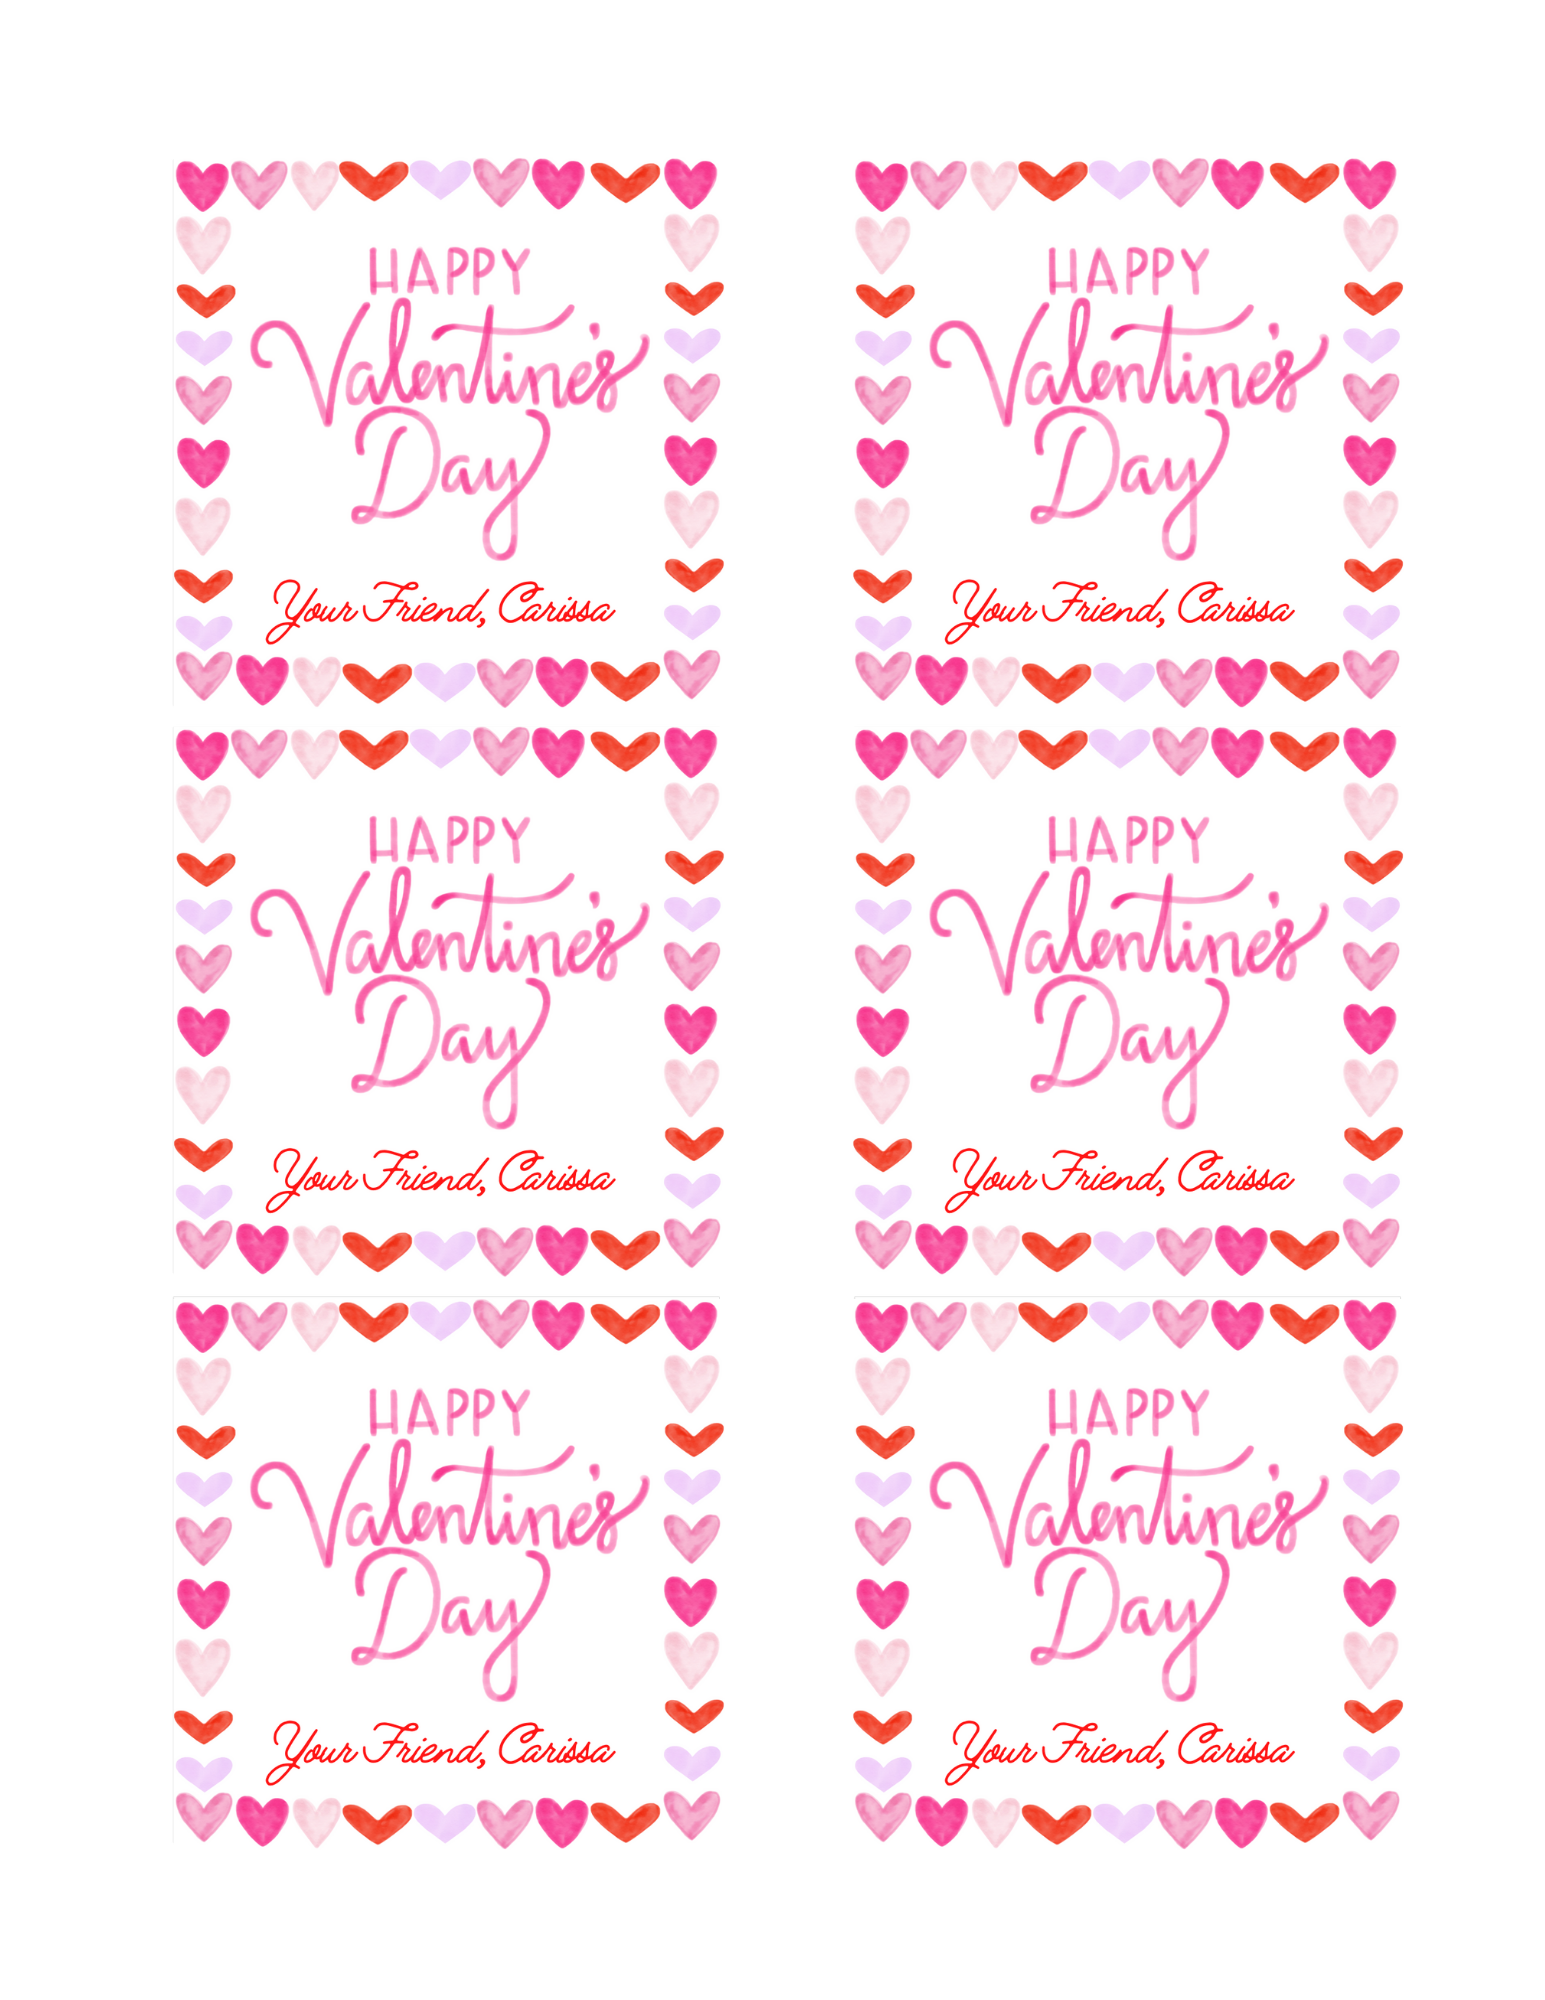 Digital Download - Valentine's Day Sticker or Gift Tag - 3x3 - Happy Valentine's Day Hearts Border